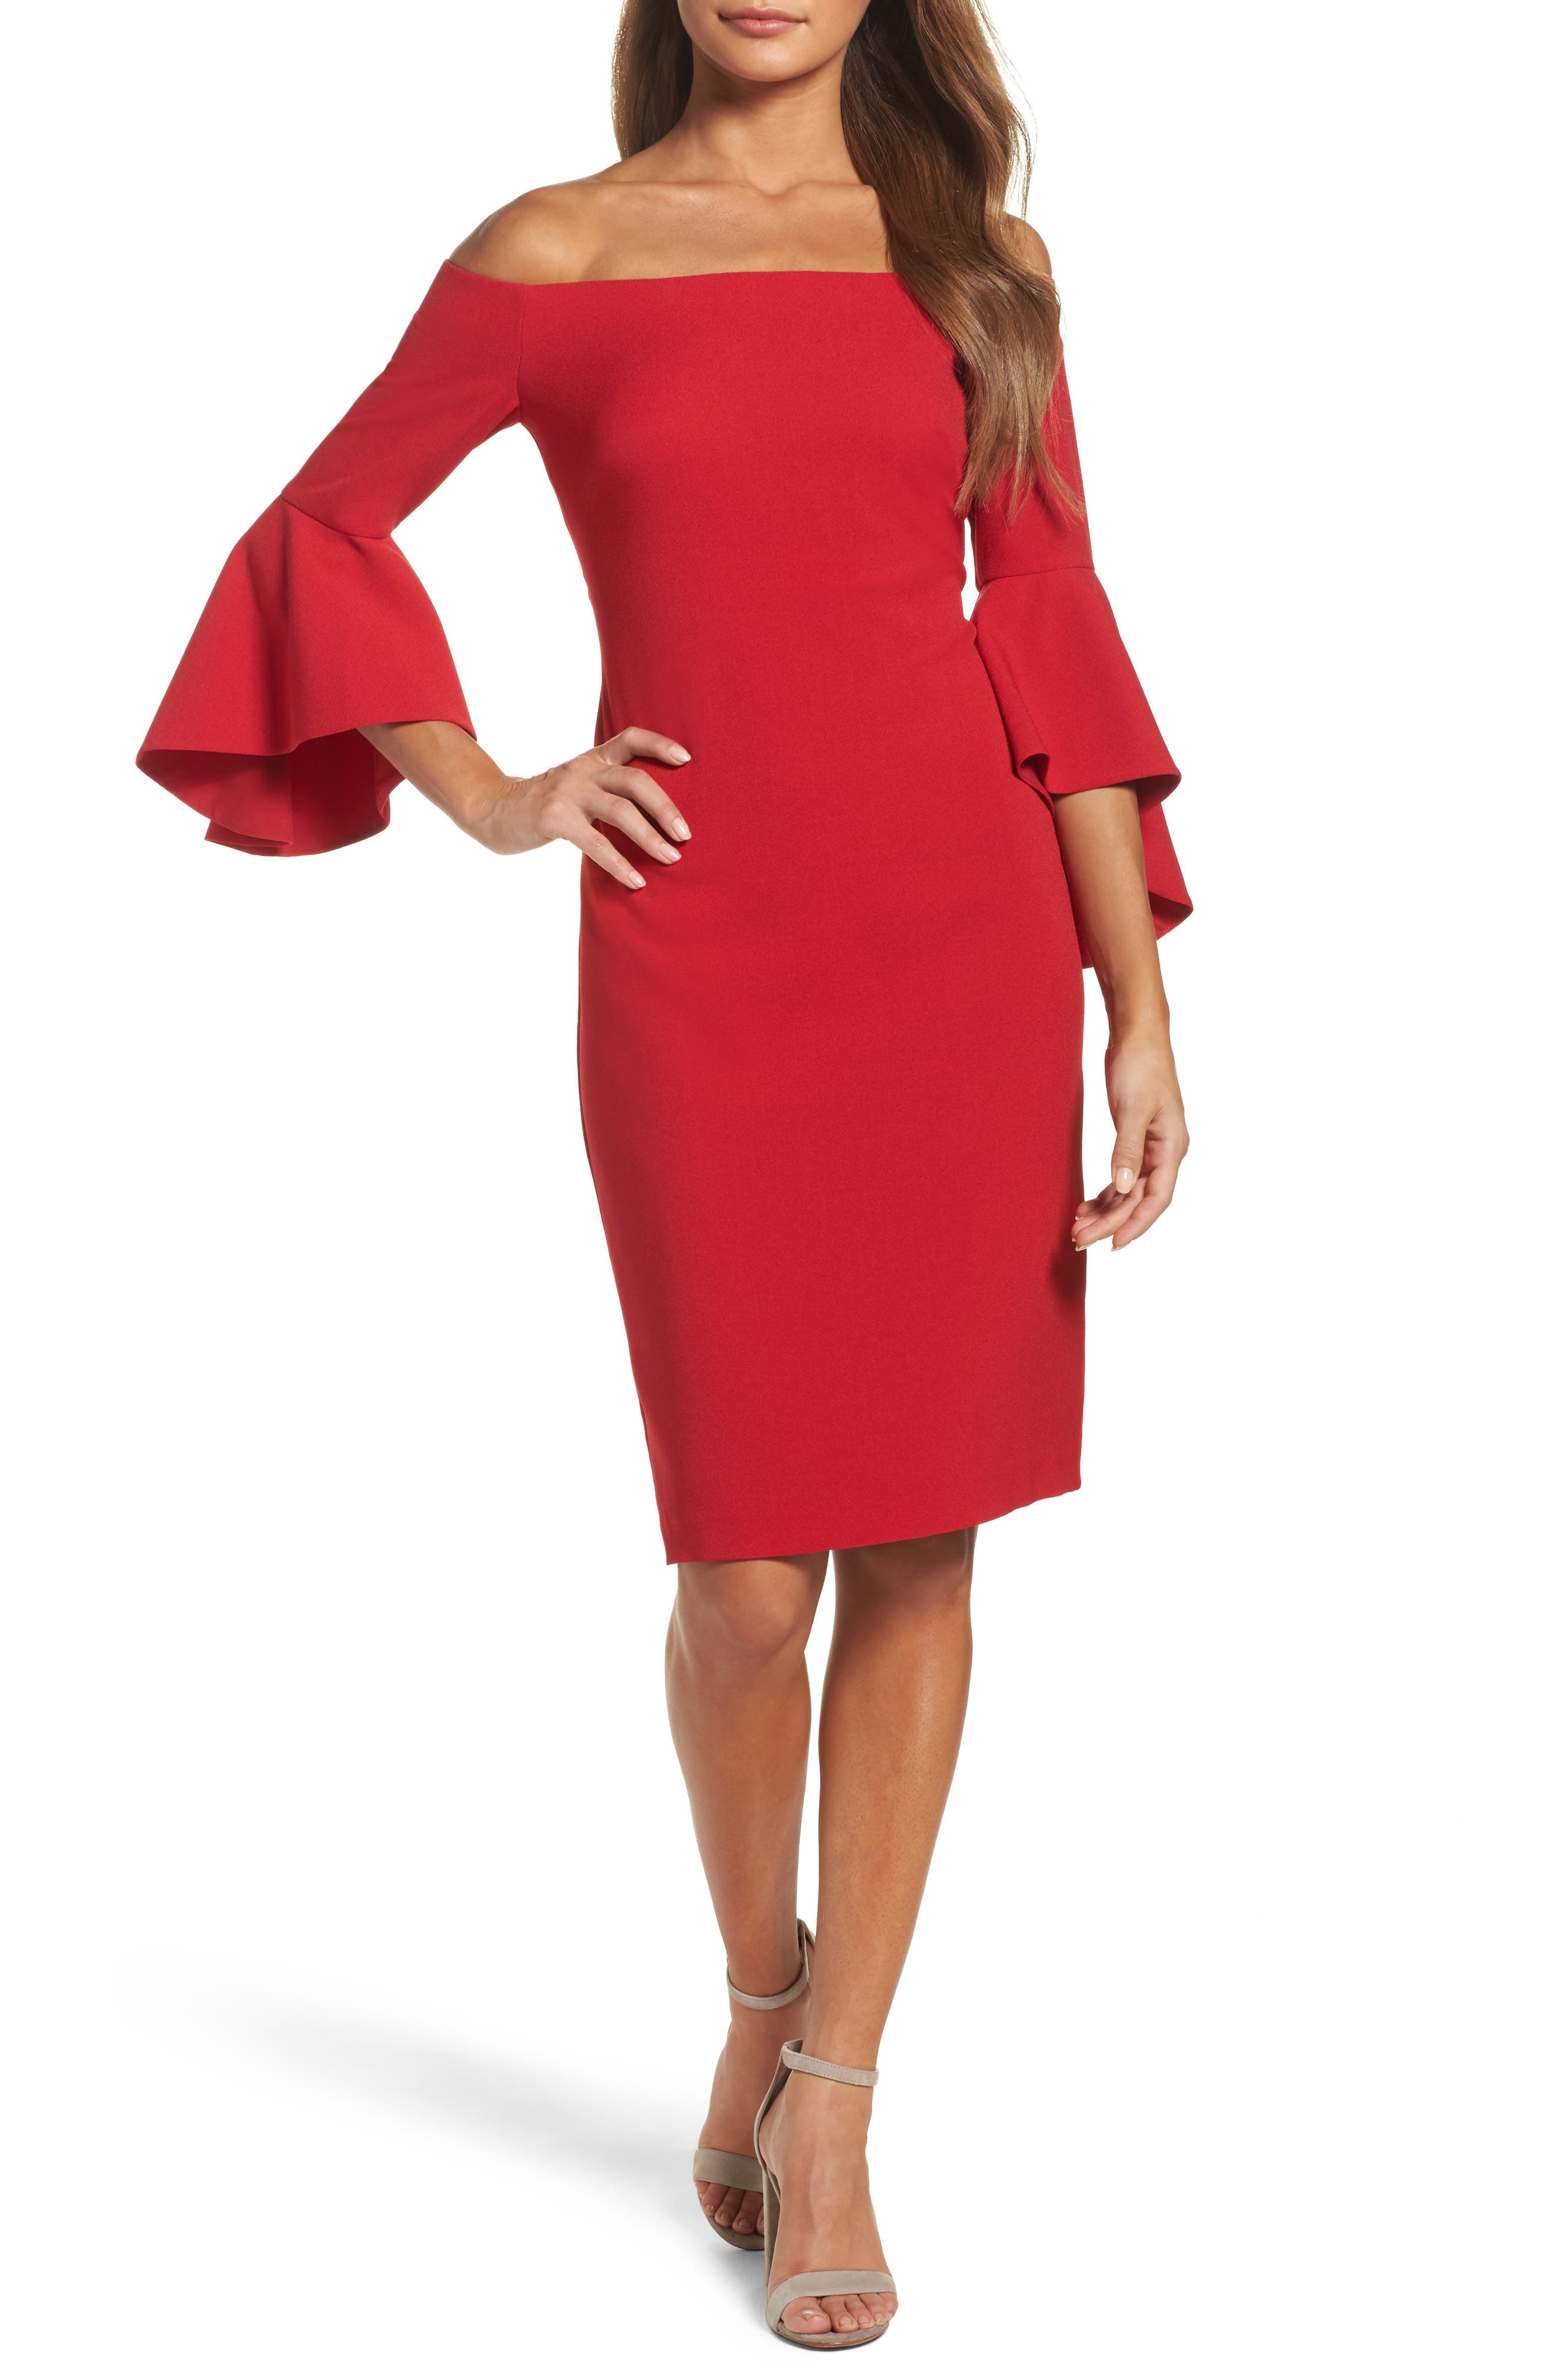 Petite Chelsea28 Off The Shoulder Cocktail Dress, Red